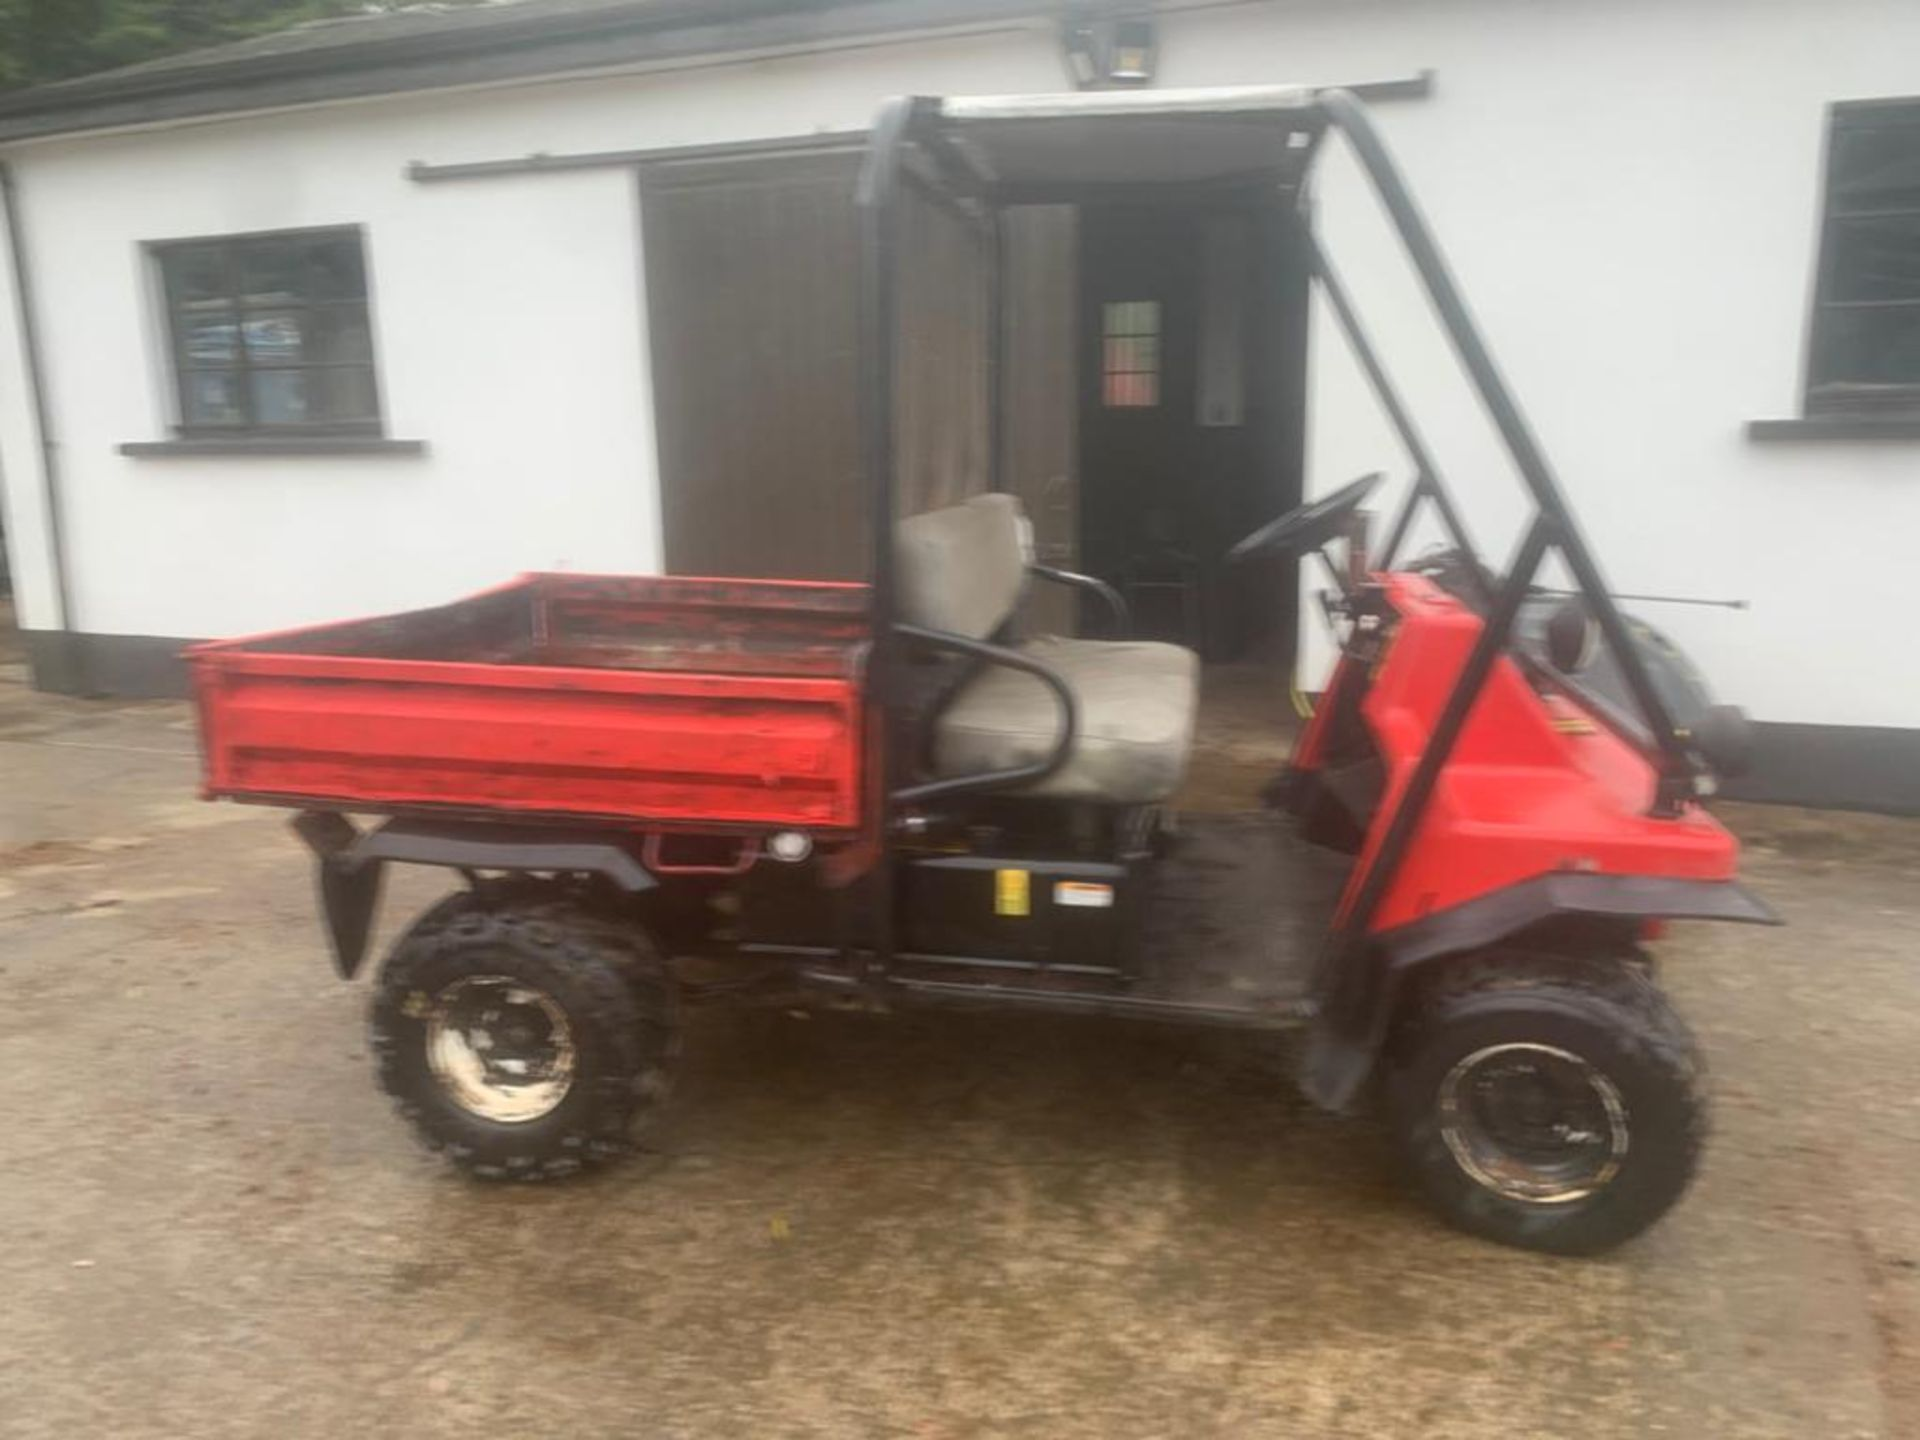 KAWASAKI PETROL MULE, DELIVERY ANYWHERE IN THE UK £300, STARTS, RUNS AND DRIVES *PLUS VAT* - Image 6 of 7